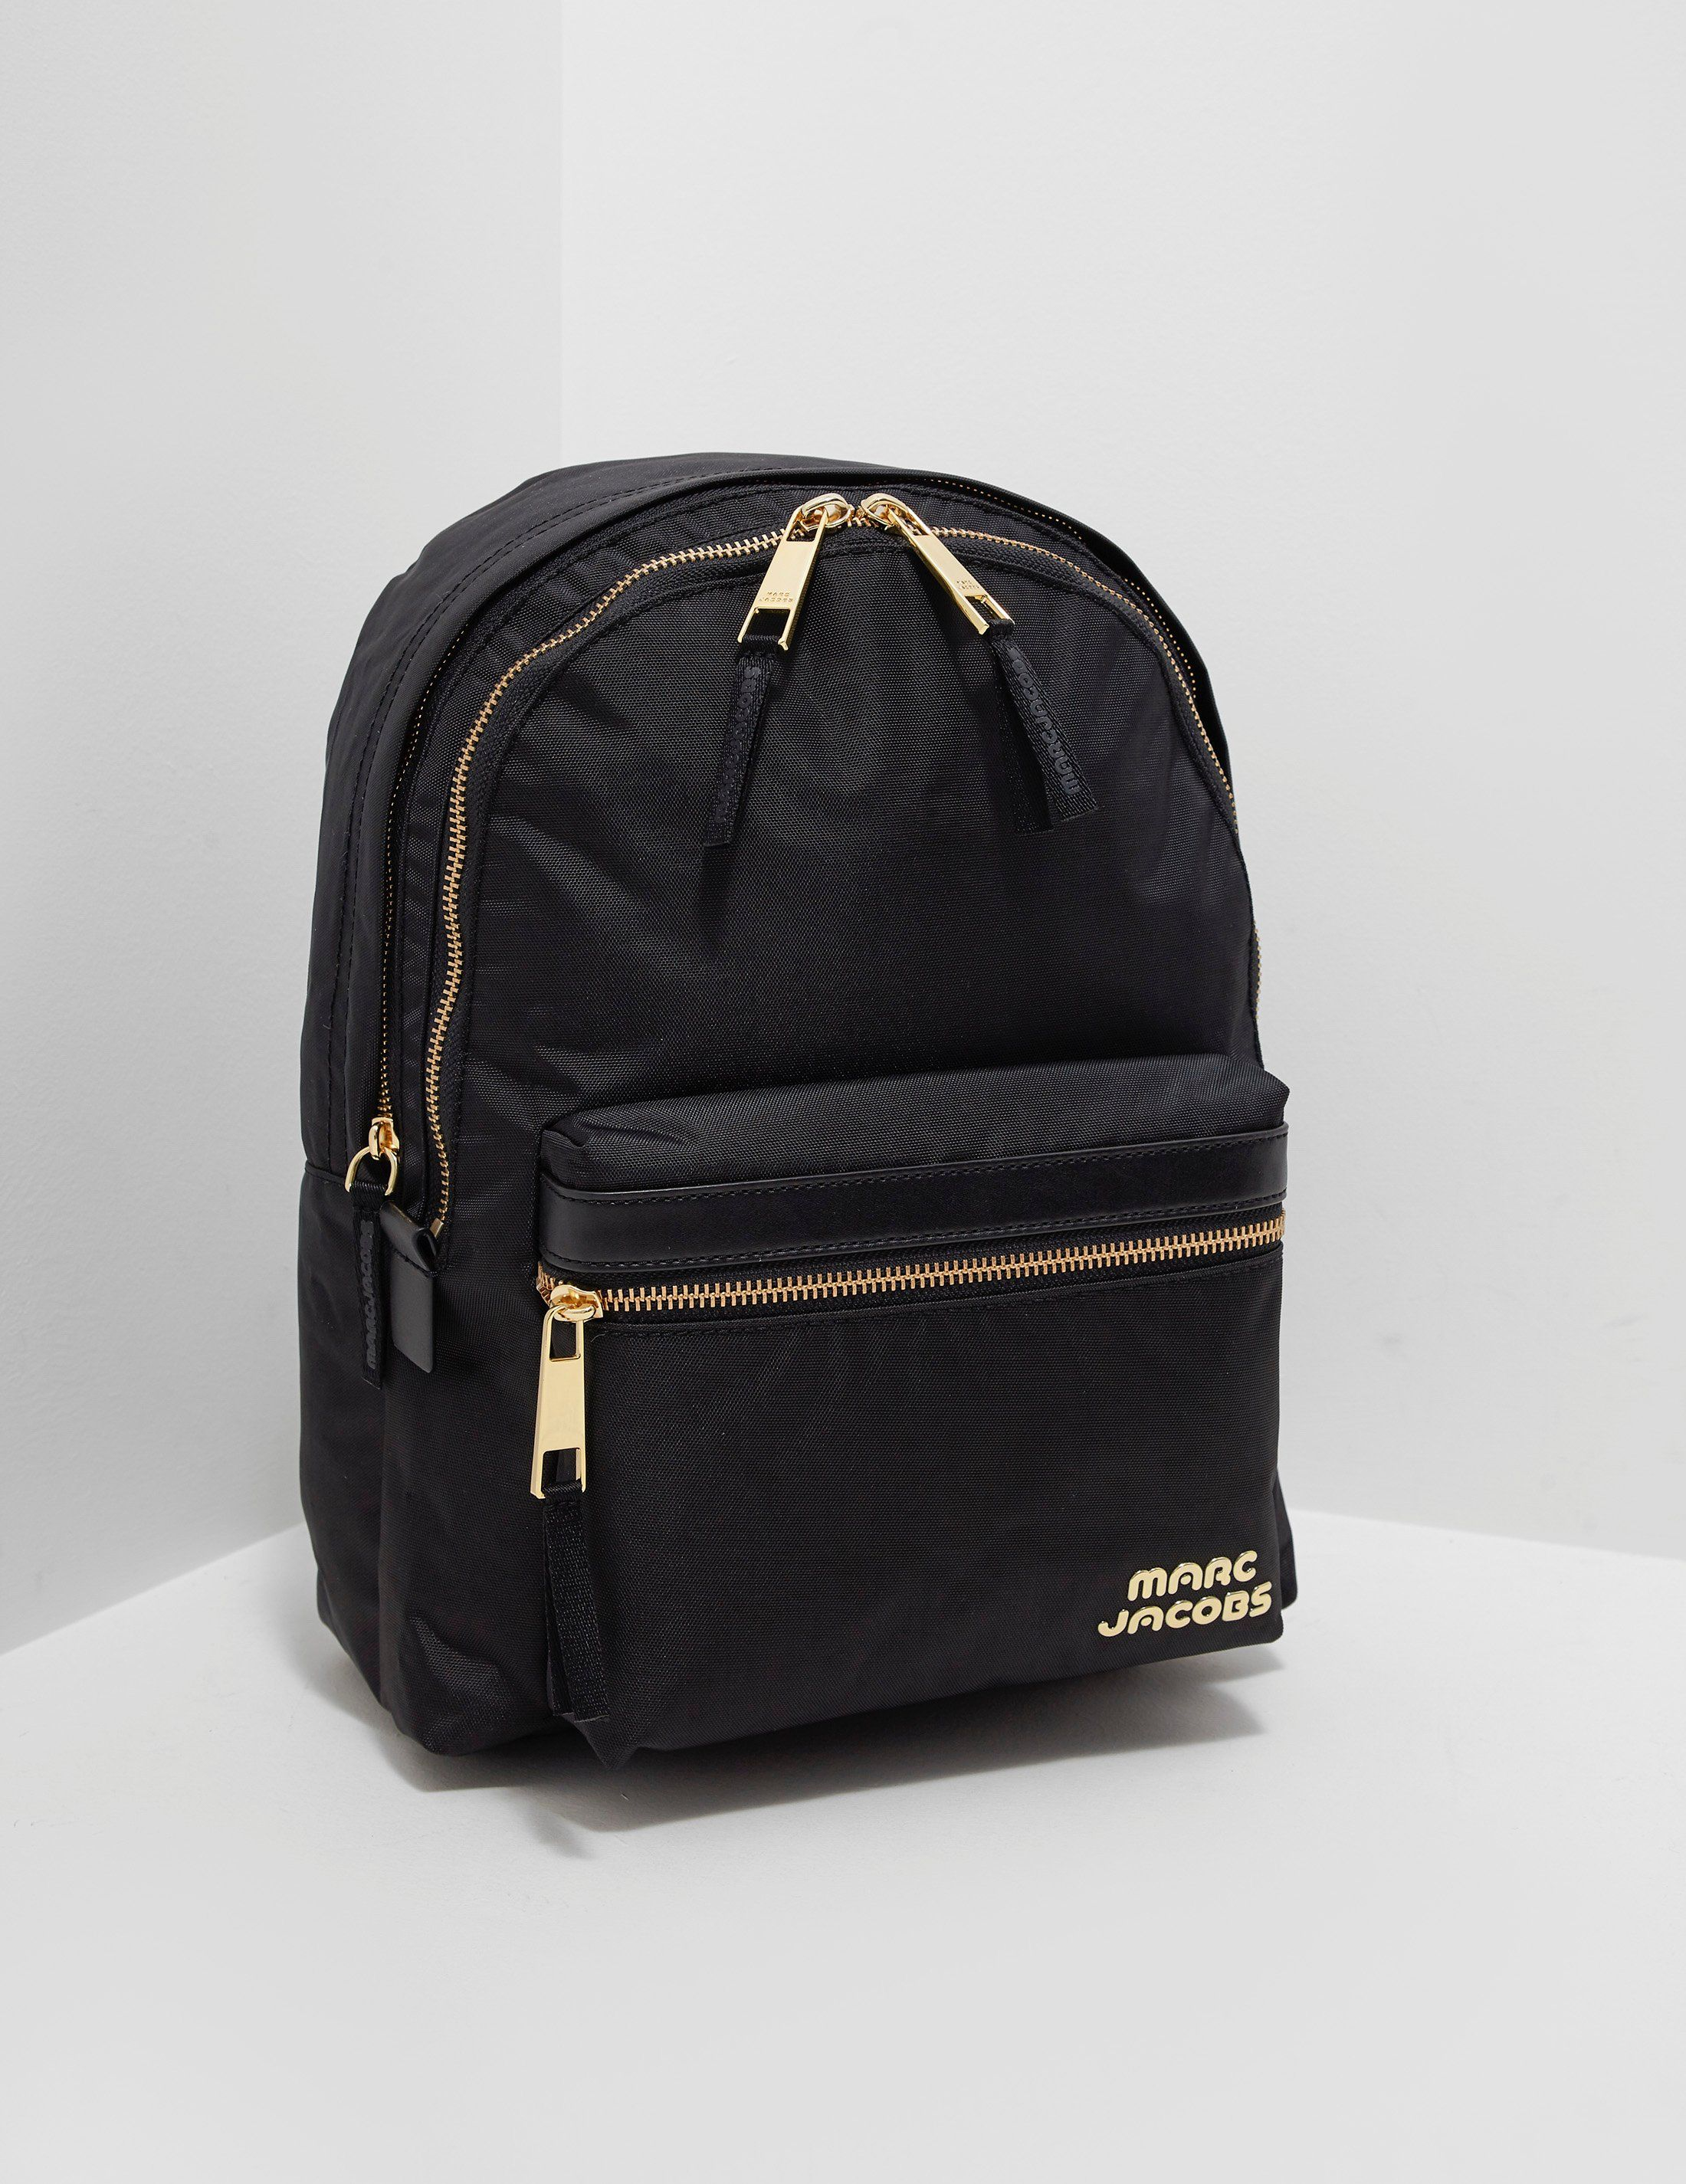 Marc Jacobs Large Backpack